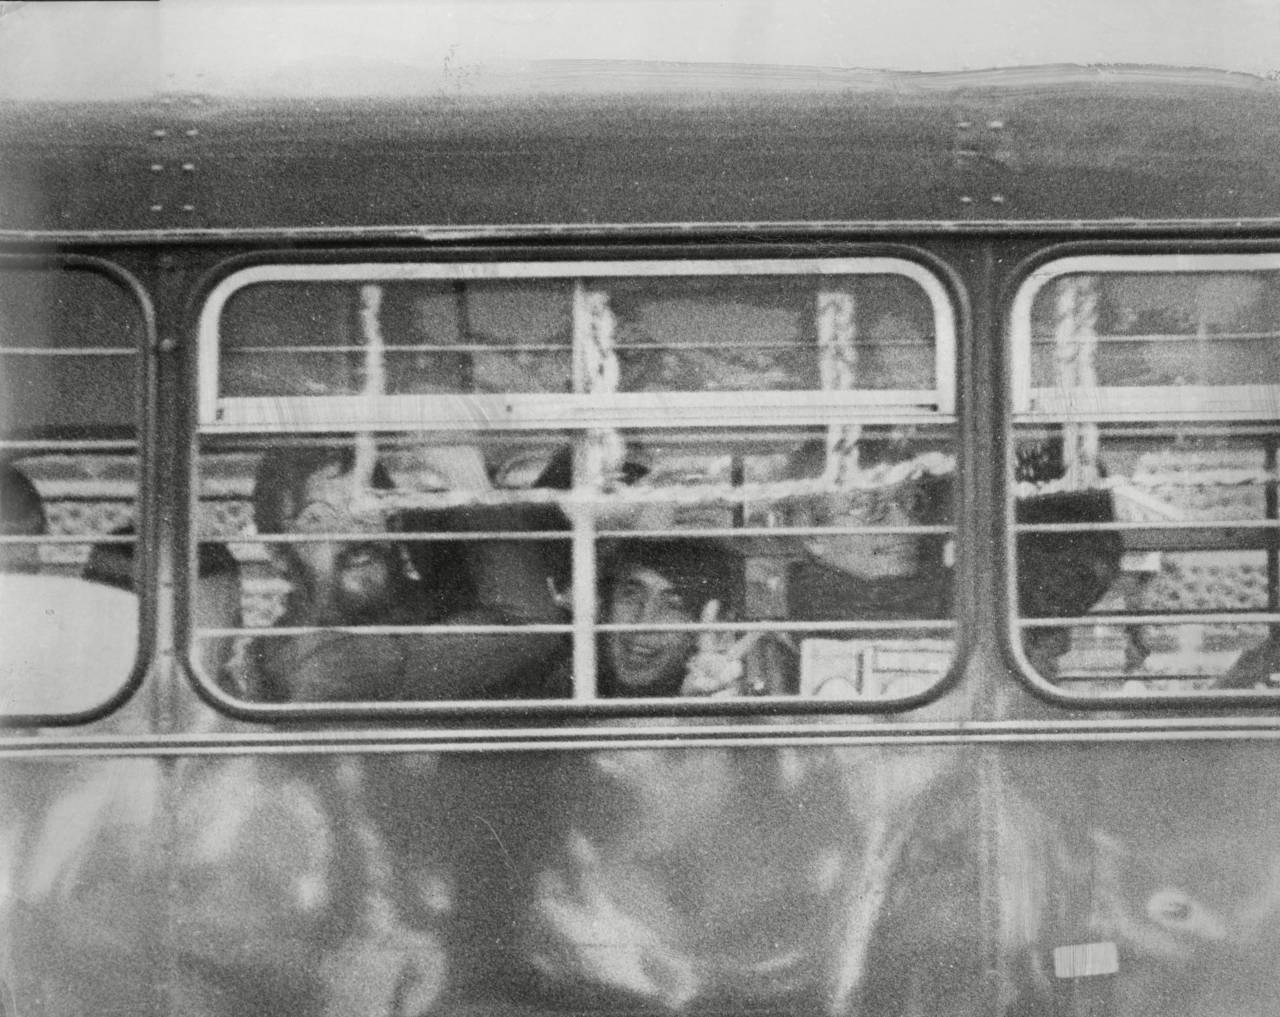 Off To Prison By Bus.. Left To Right Felix Dennis Richard Neville And James Anderson. The Three Editors Of Oz Magazine Were Jailed For Publishing An Obscene Article. Photo by Ronald Fortune / Associated Newspapers / Rex Features (1302418a)